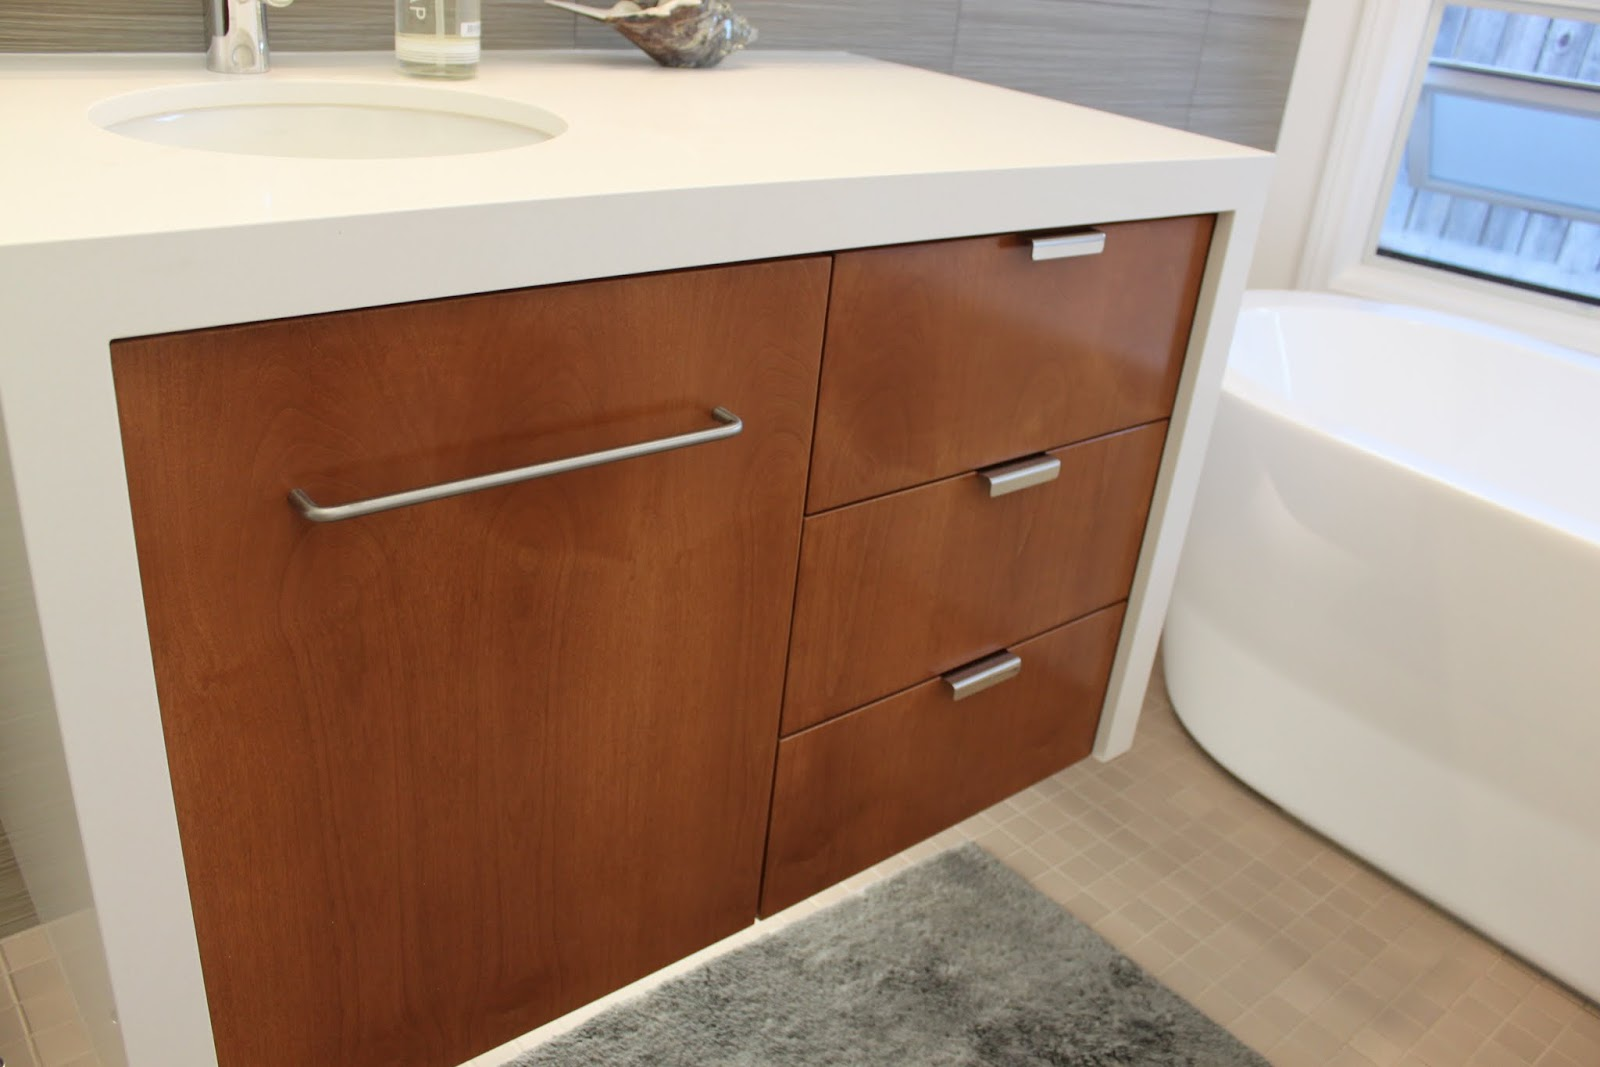 Mid Century Modern Knobs Towel Bars Toilet Paper Holder